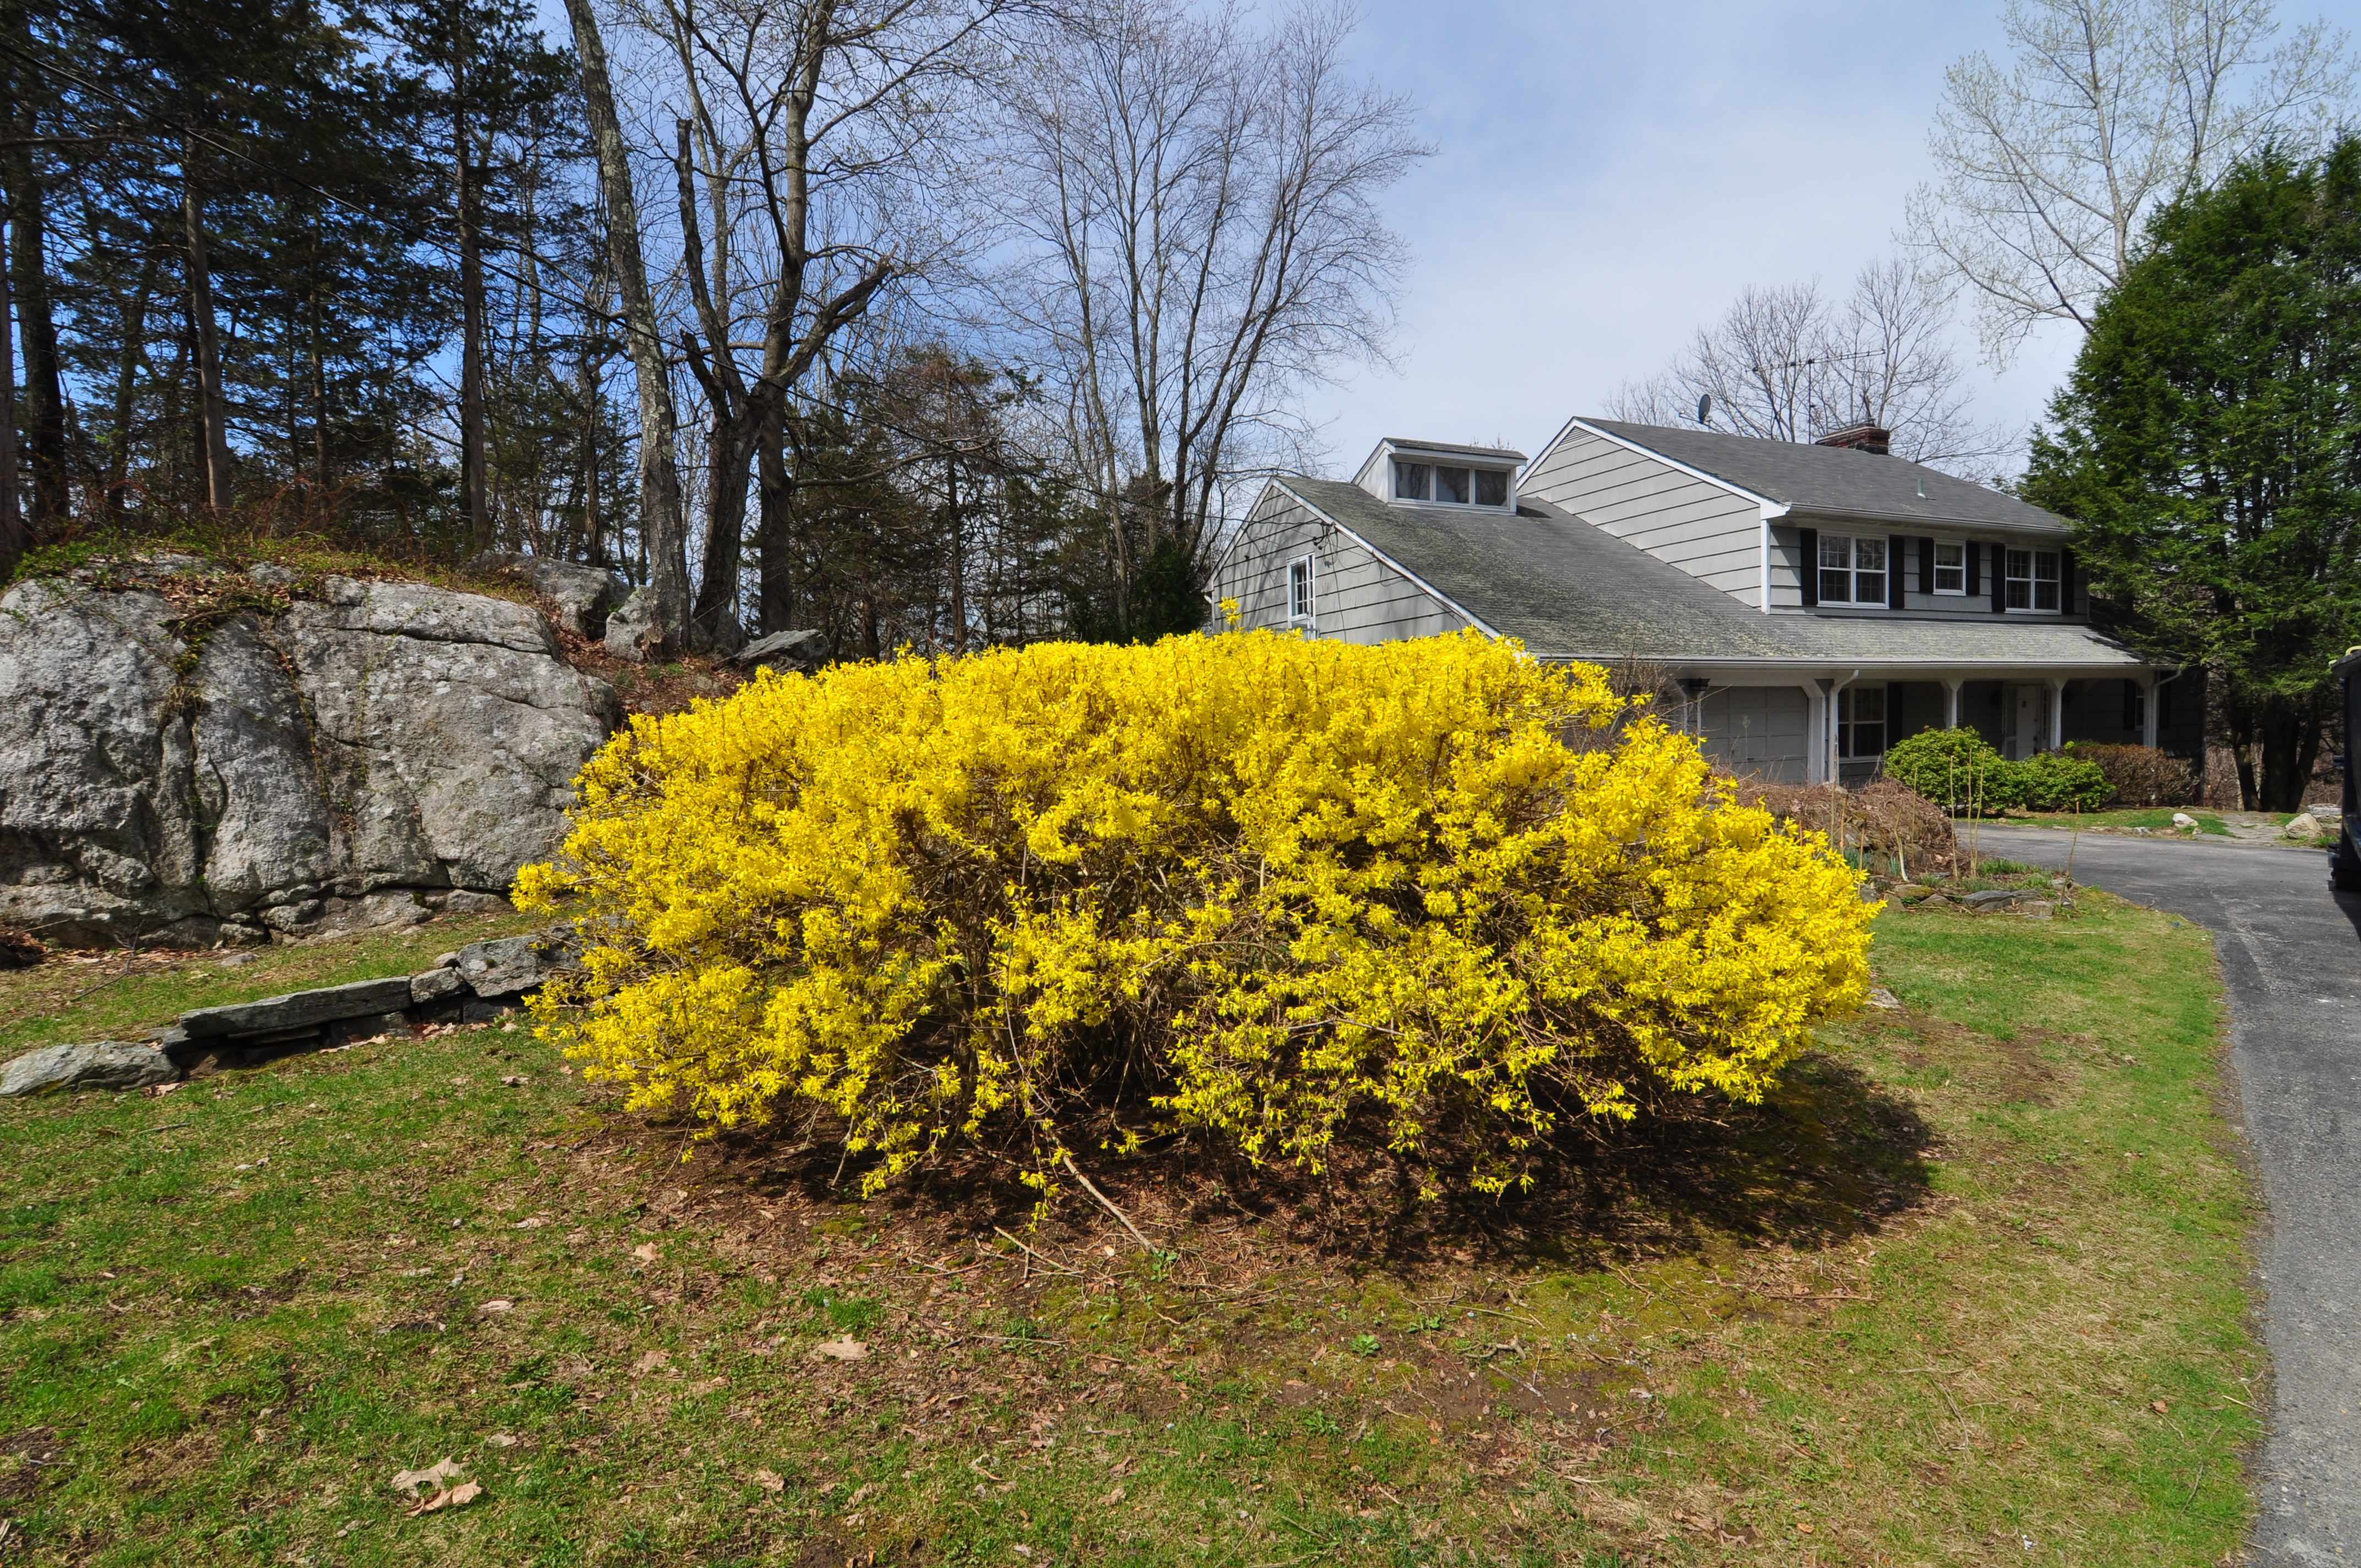 Single Family Home for Sale at Bring your imagination 57 Wood Road Bedford Hills, New York 10507 United States